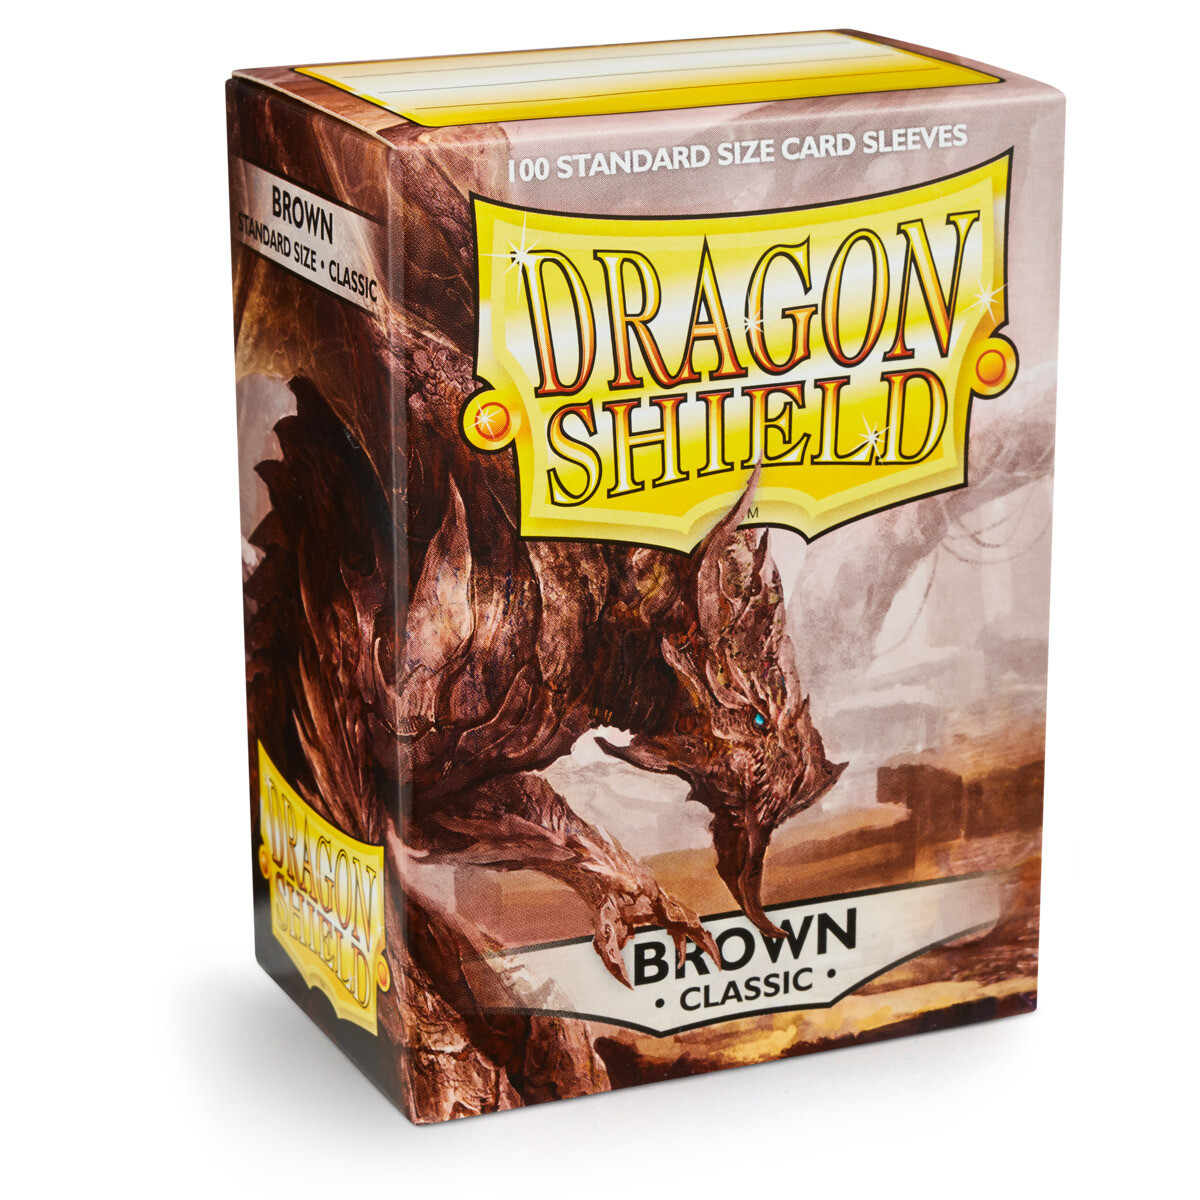 Dragon Shield 100 Sleeves - Brown